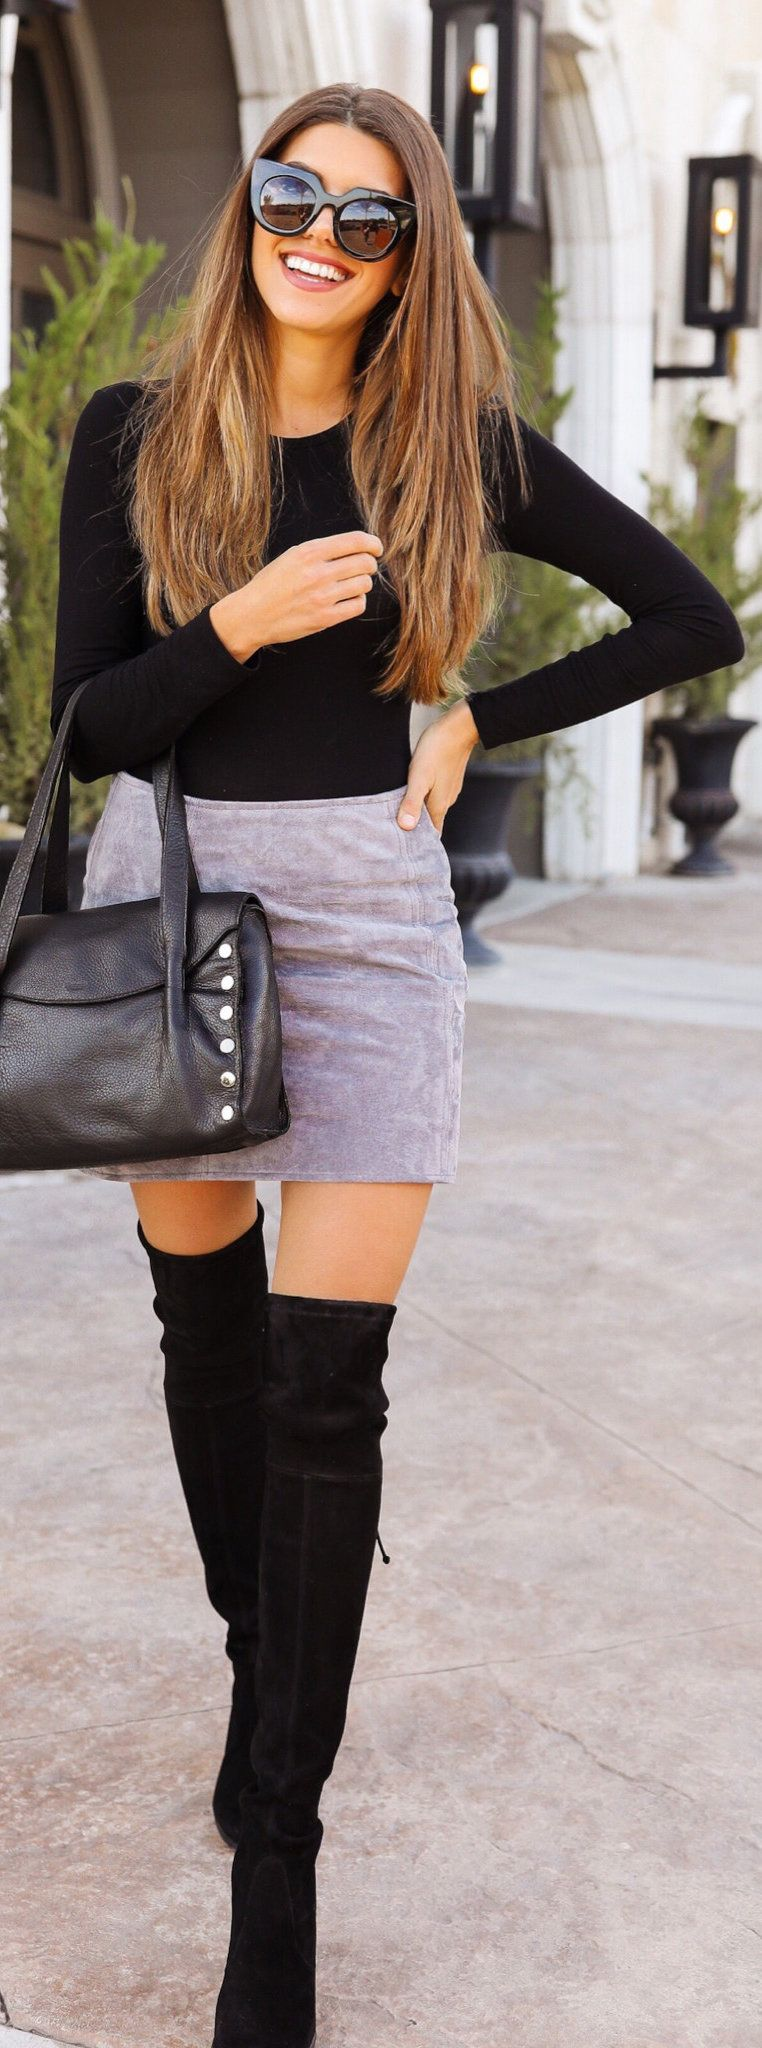 black crew-neck long-sleeved shirt and gray miniskirt